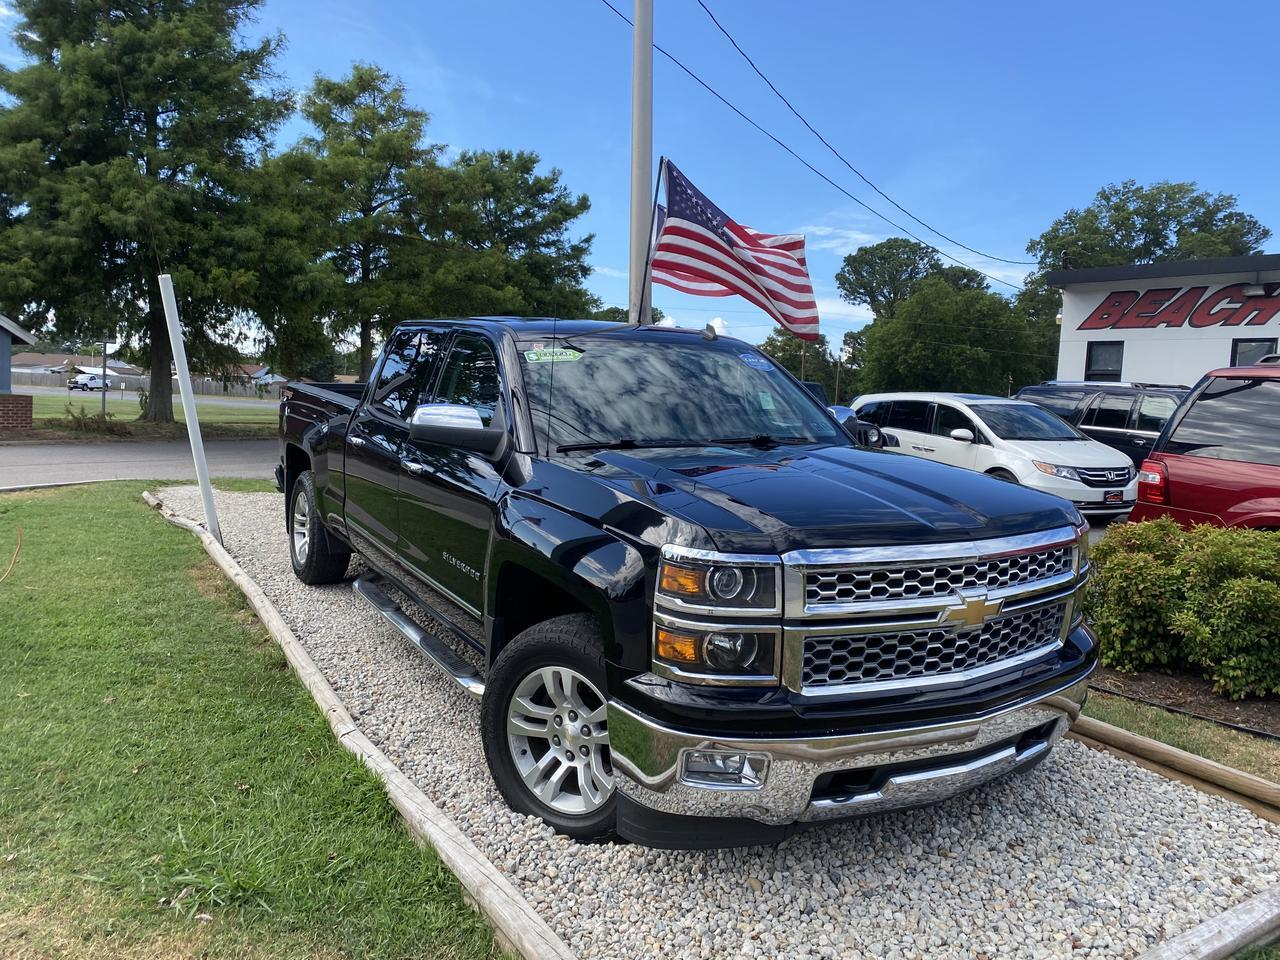 2014 CHEVROLET SILVERADO 1500 LTZ CREW CAB 4X4, WARRANTY, LEATHER, NAV, TOW PKG, BLUETOOTH, CLEAN CARFAX!